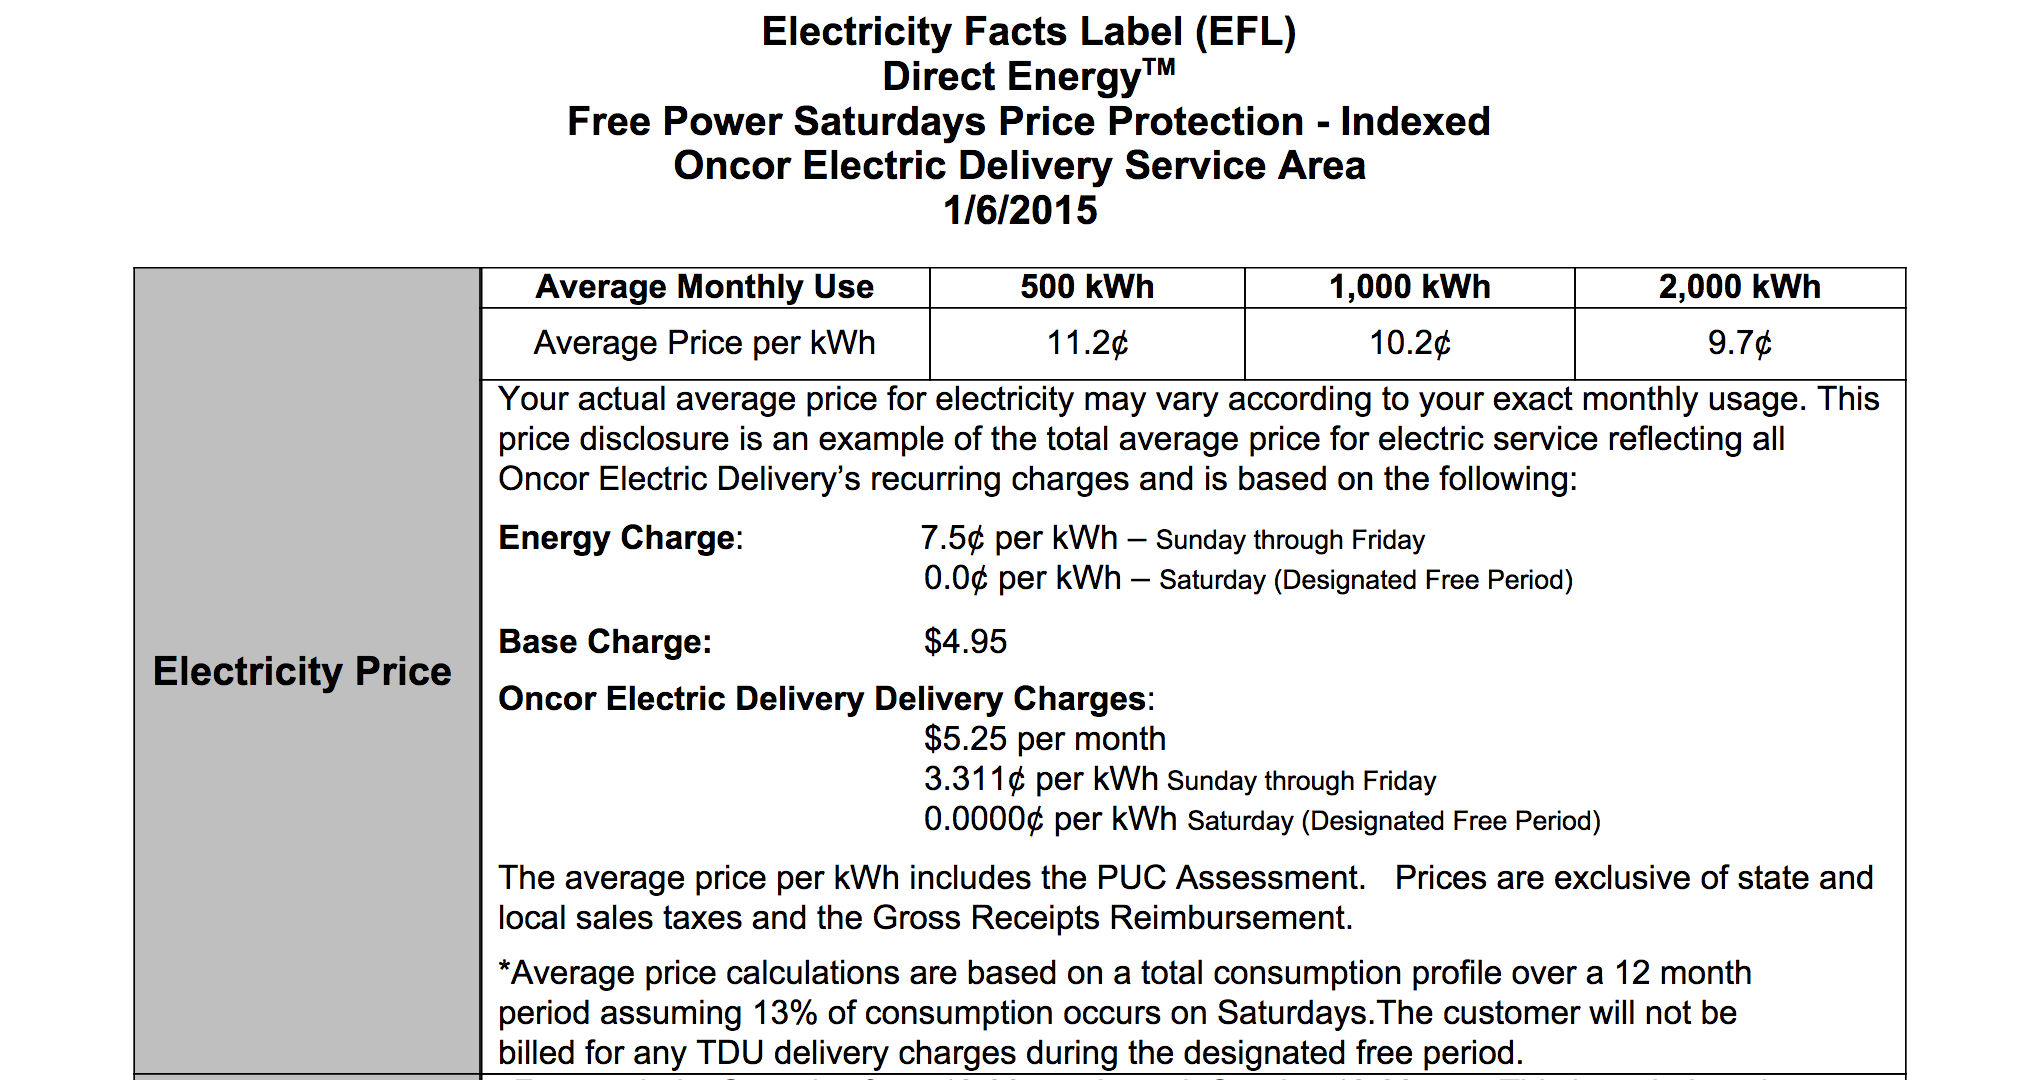 What Is An Electricity Facts Label Efl And Why Does It Matter Texas Electricity Examiner Energy Plan Renewable Sources Of Energy Electricity